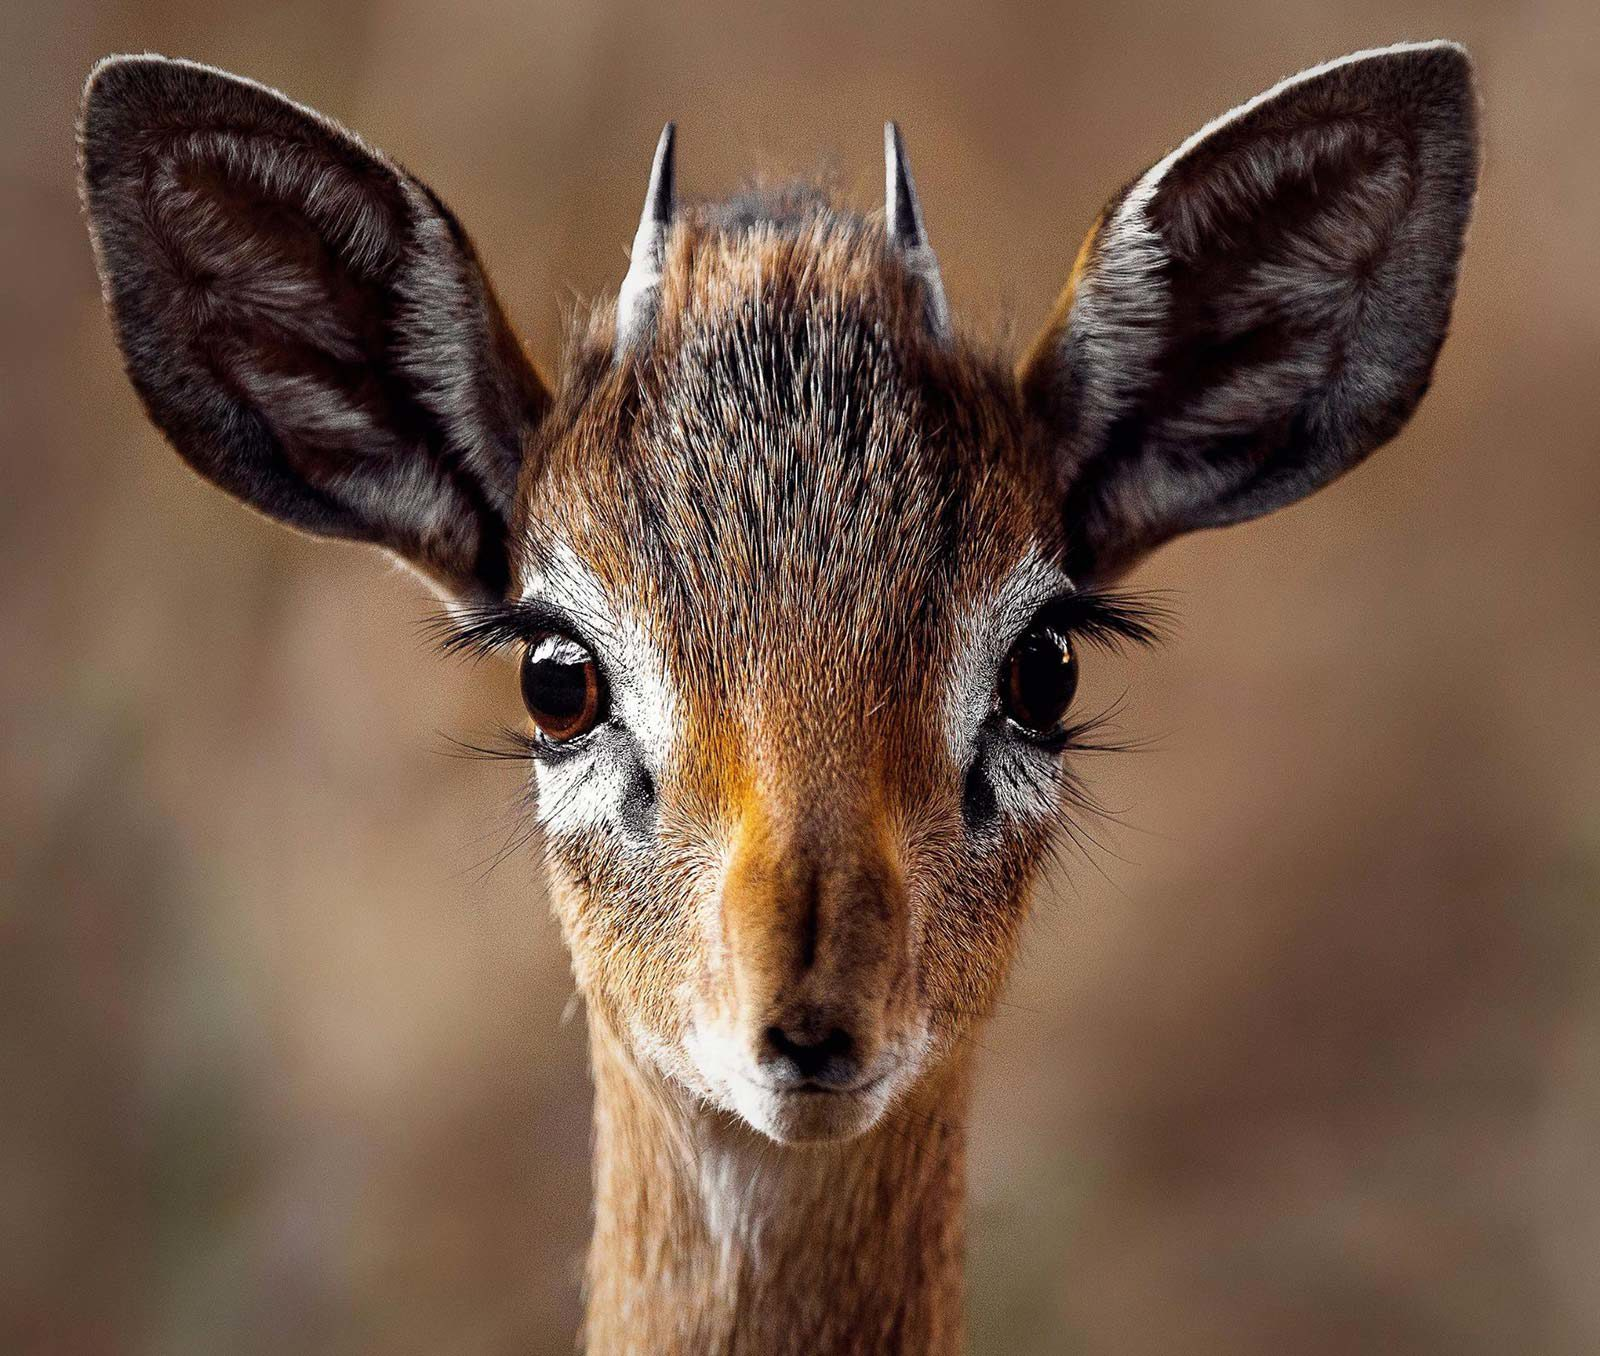 Small dik-dik looking straight at camera.